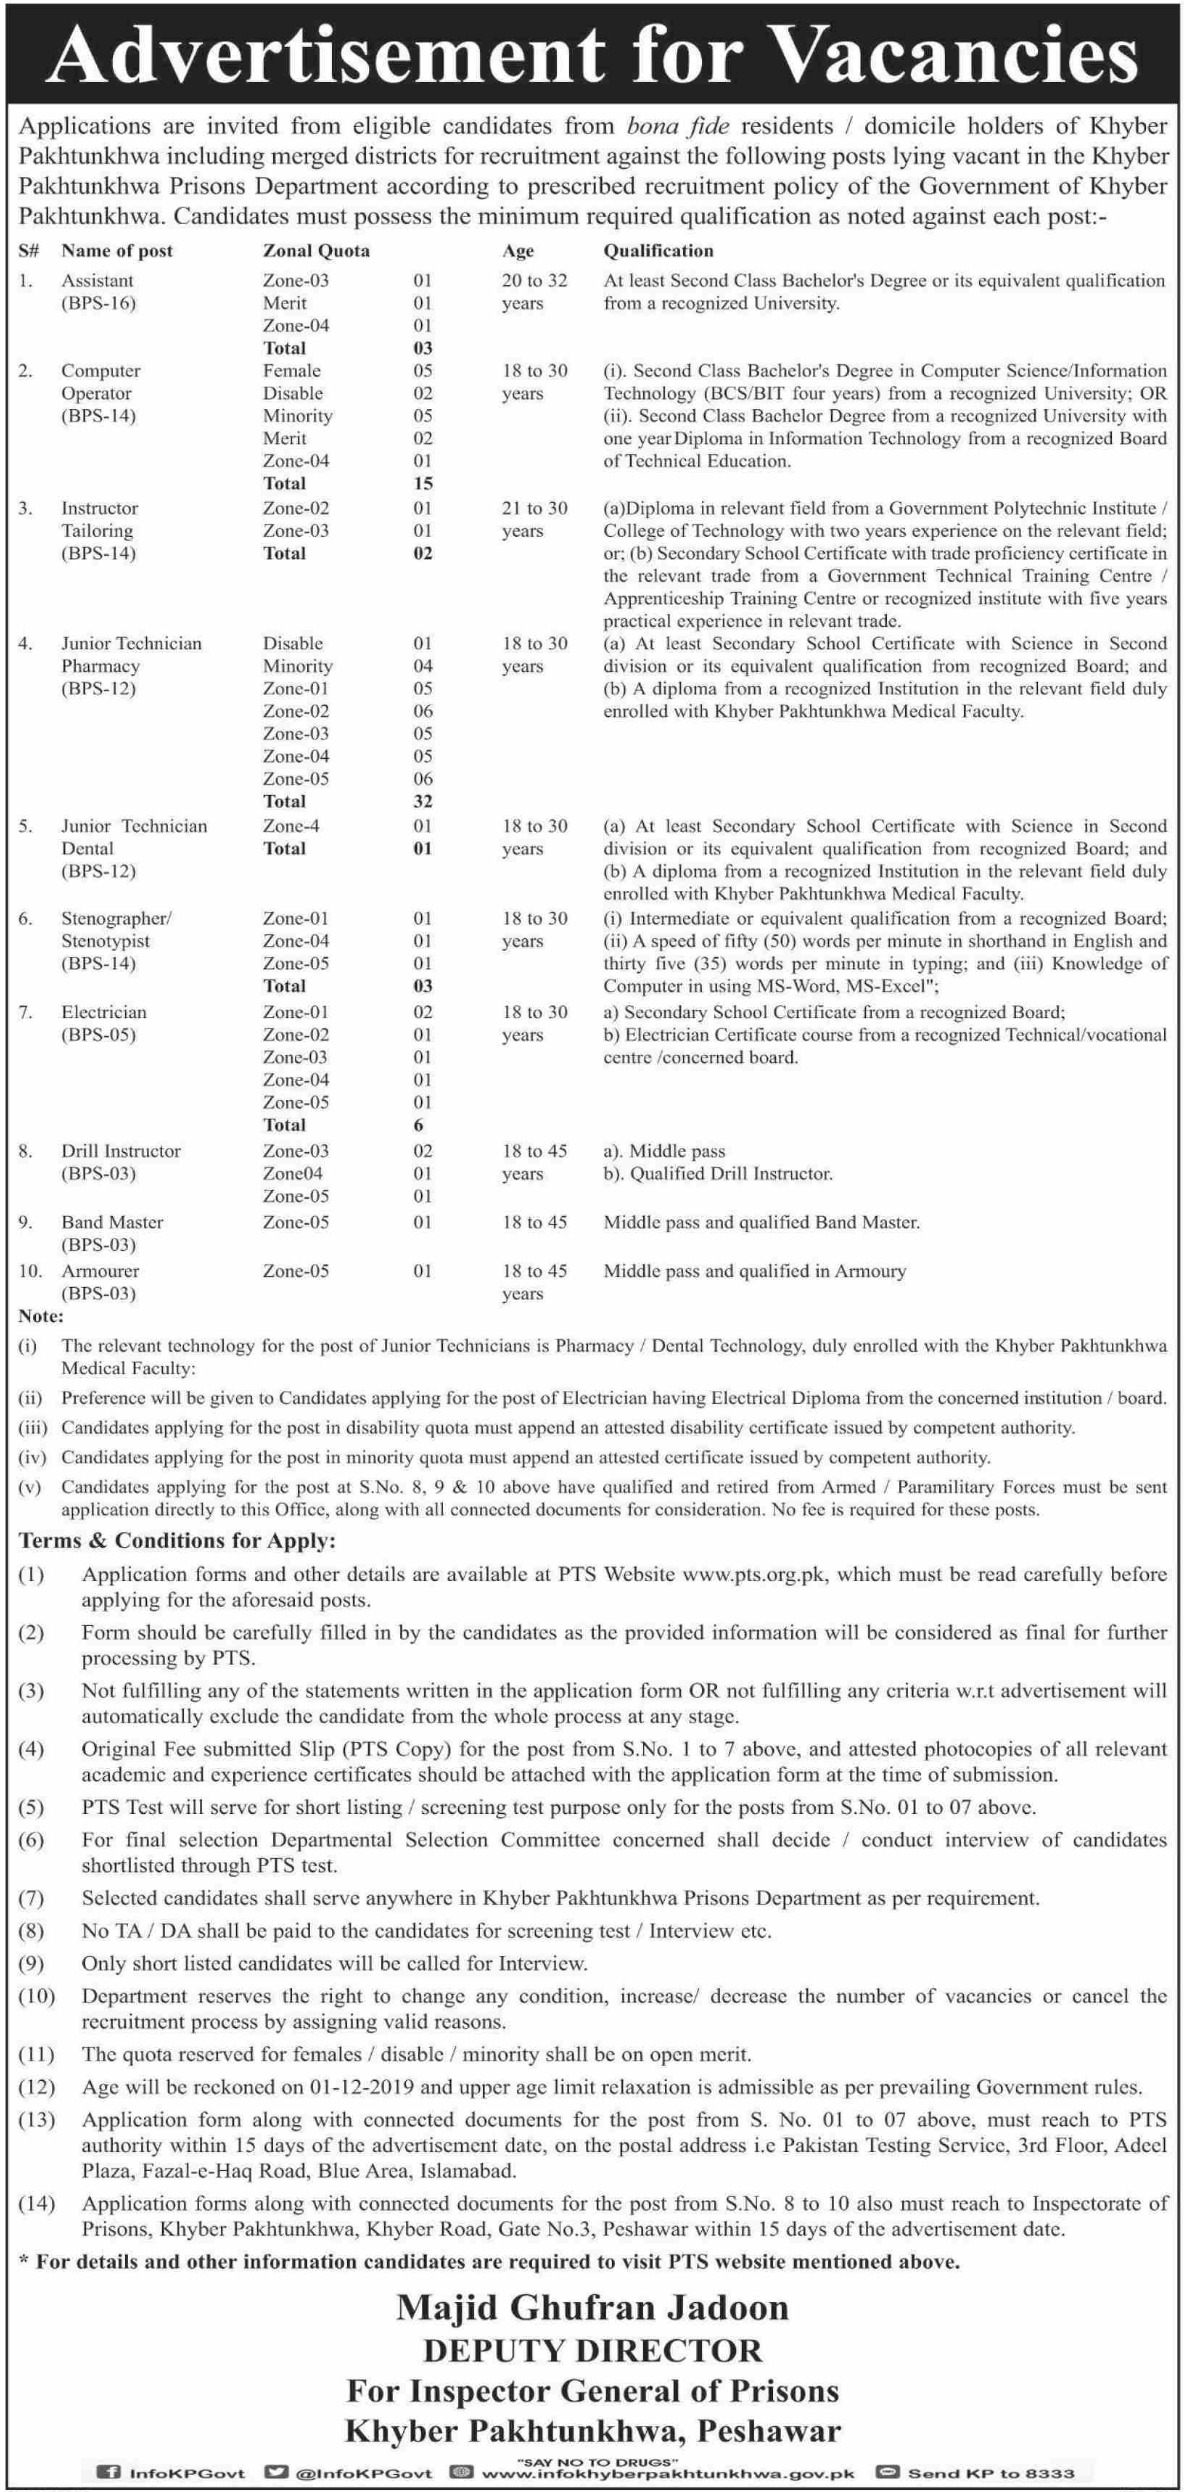 KPK Prison Department PTS Jobs 2019